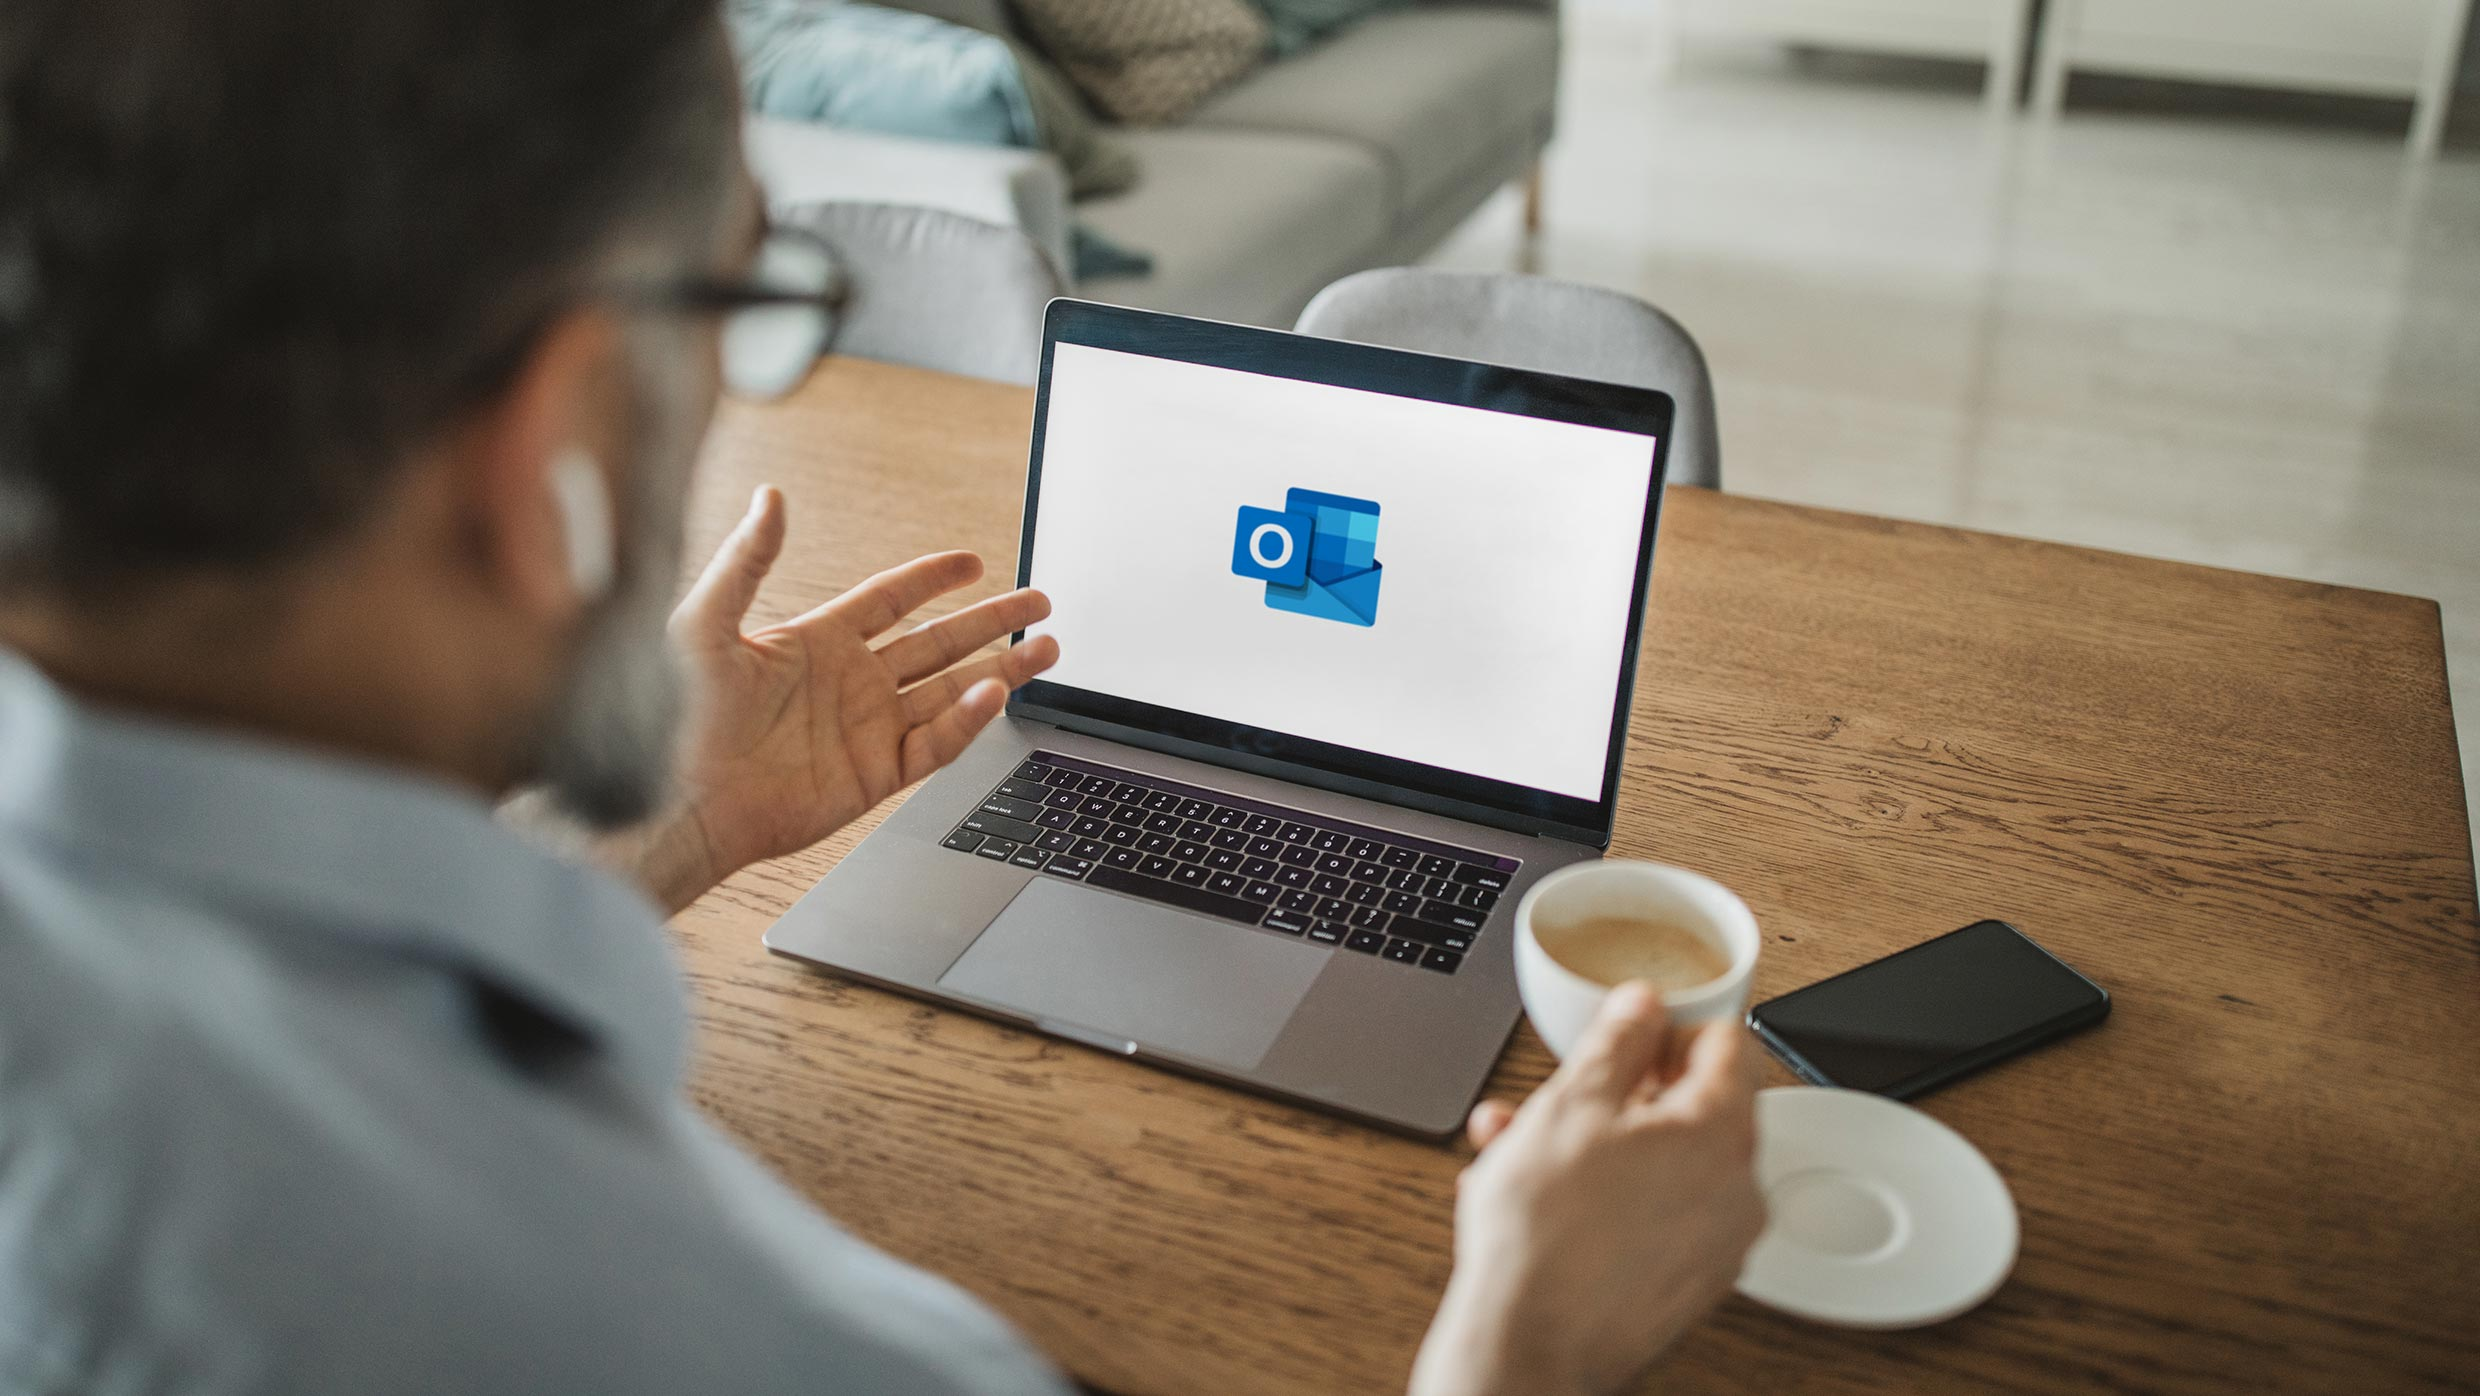 How to schedule a meeting in Outlook